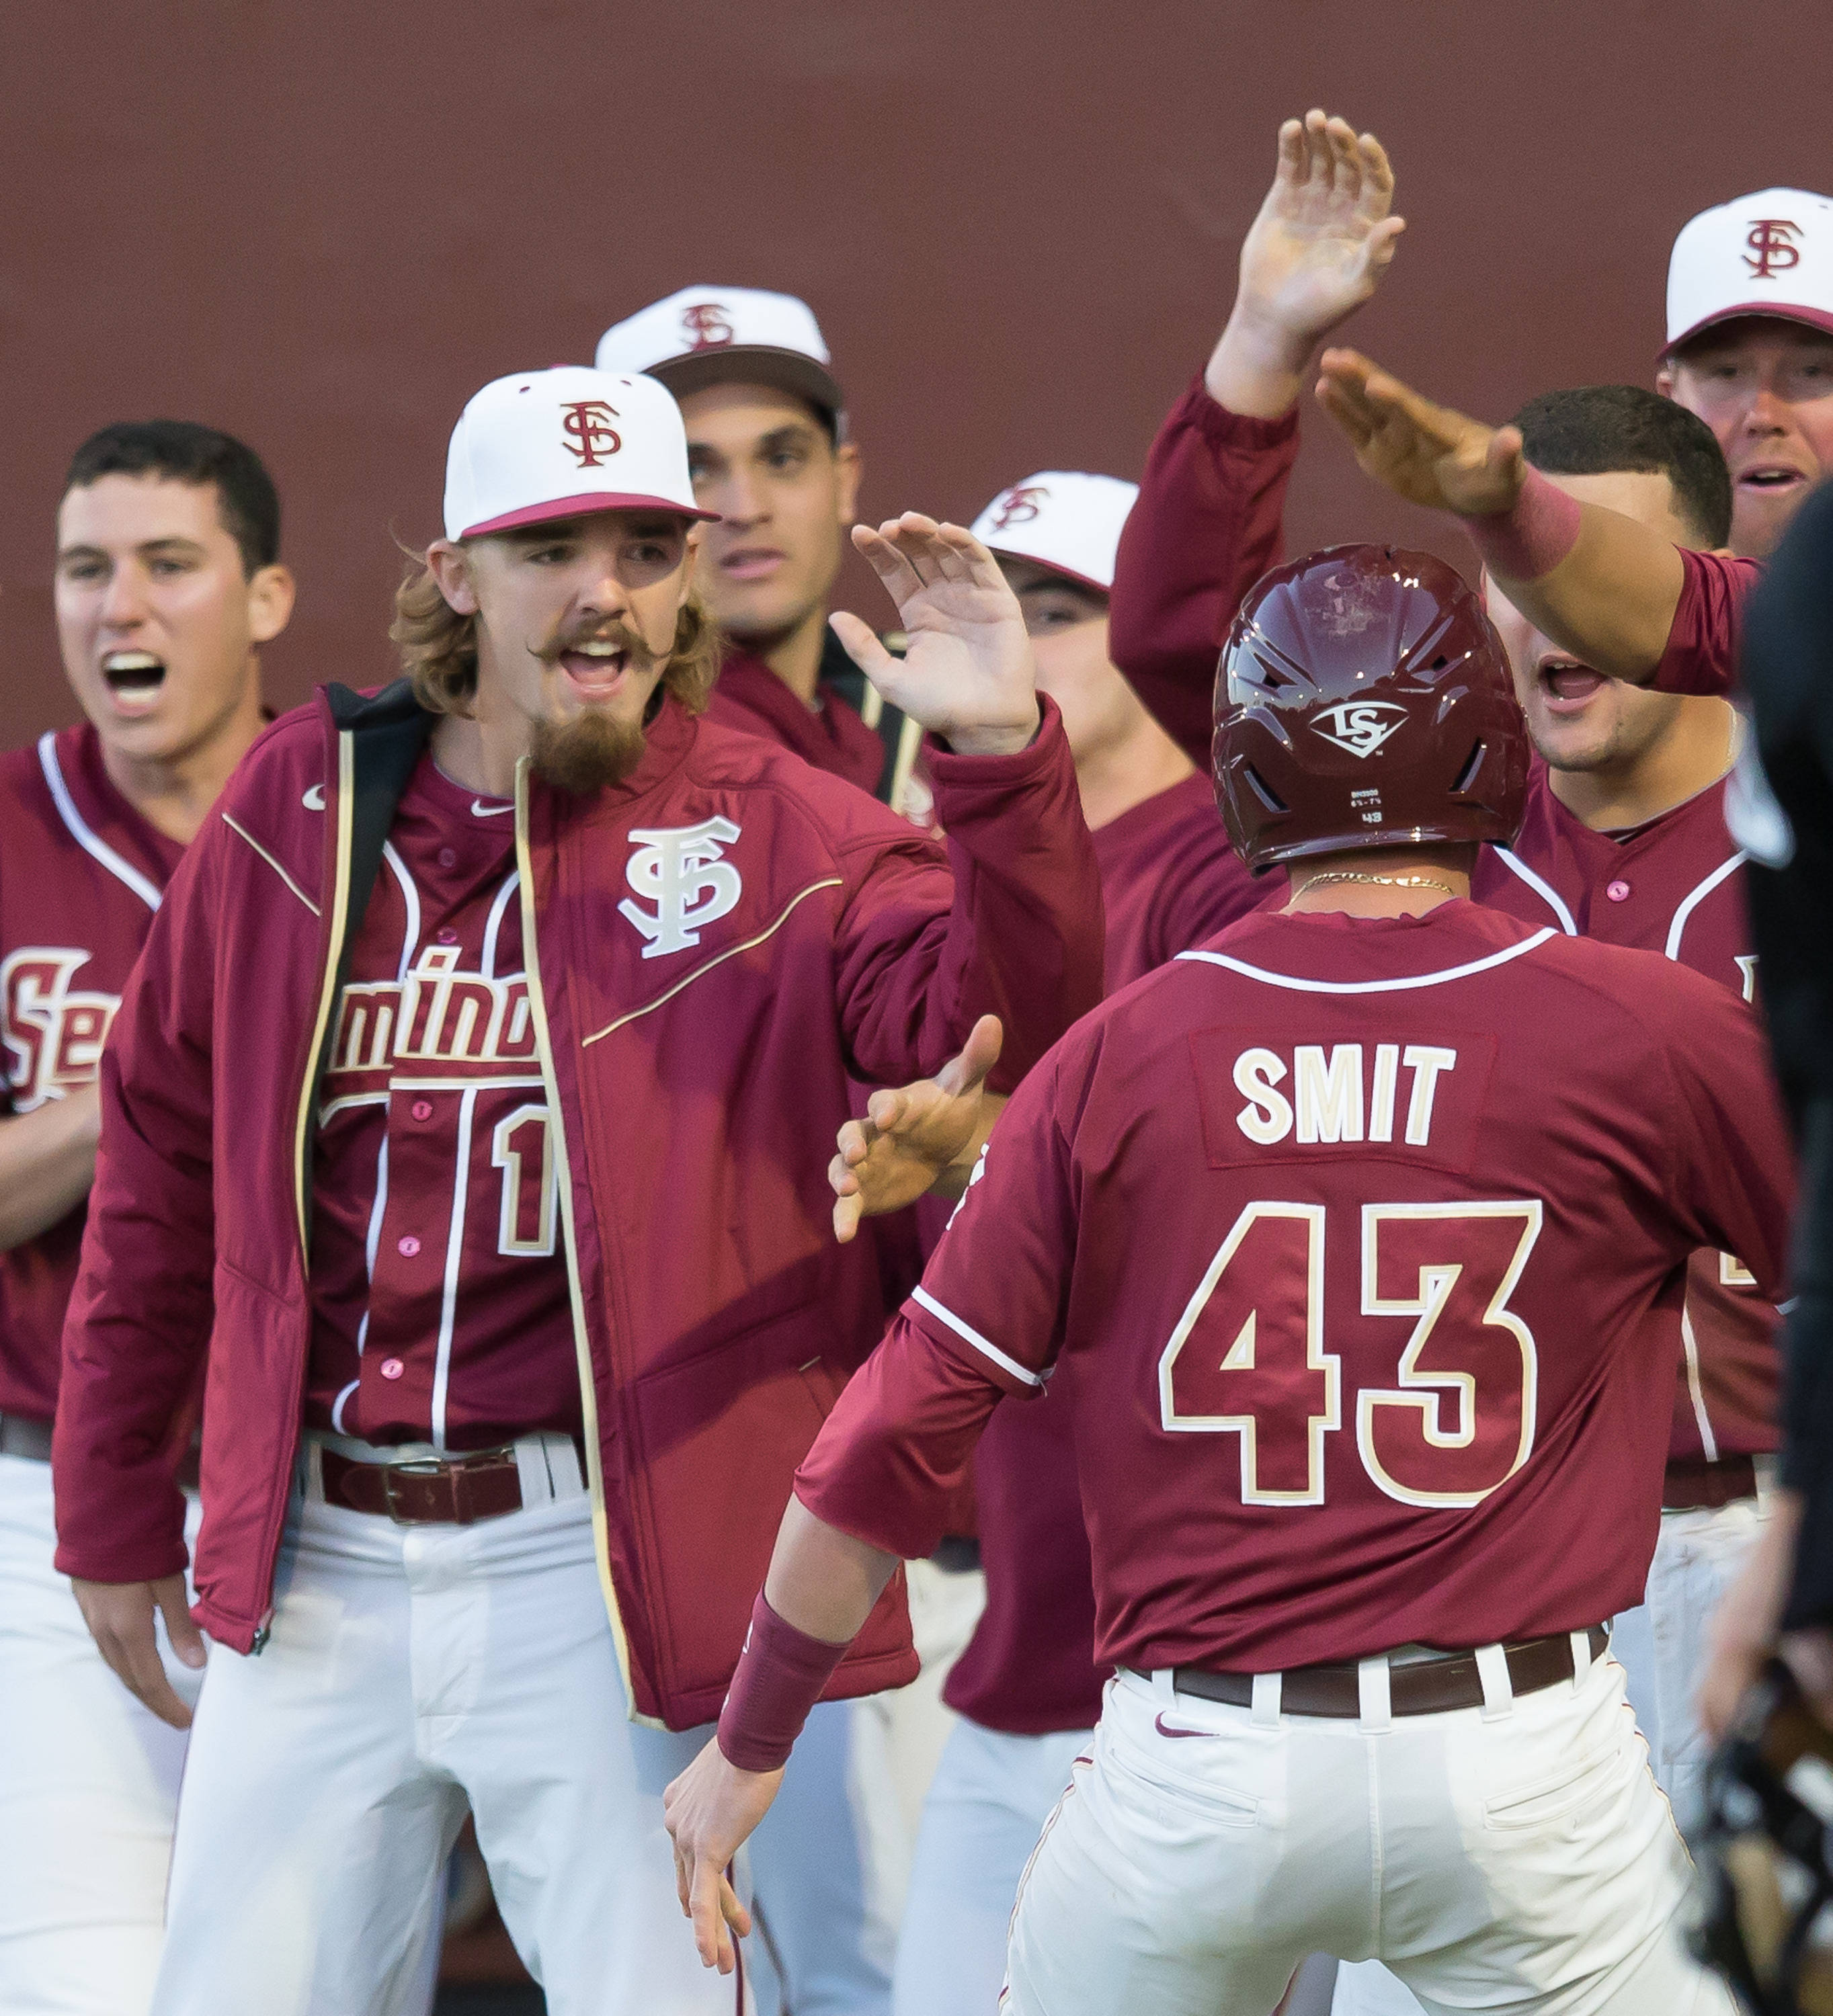 Teammates greet Casey Smit (43) after he scores the Noles first run.